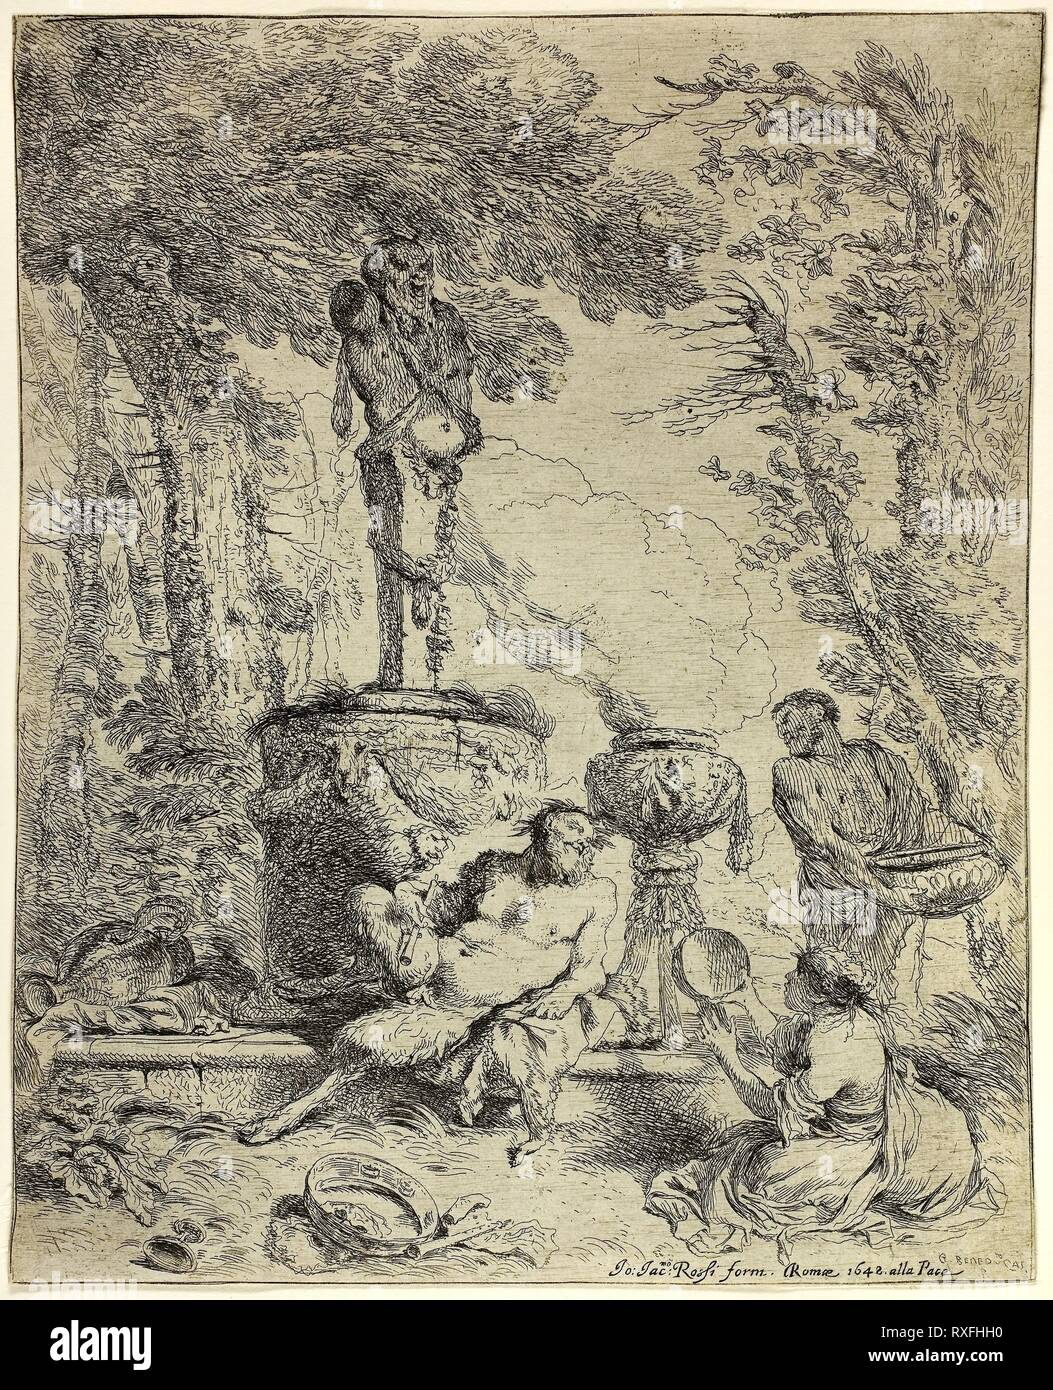 Feast of Pan. Giovanni Benedetto Castiglione; Italian, 1609-1664. Date: 1642-1652. Dimensions: 227 x 184 mm (image/sheet; cut within plate). Etching on ivory paper. Origin: Italy. Museum: The Chicago Art Institute. Stock Photo